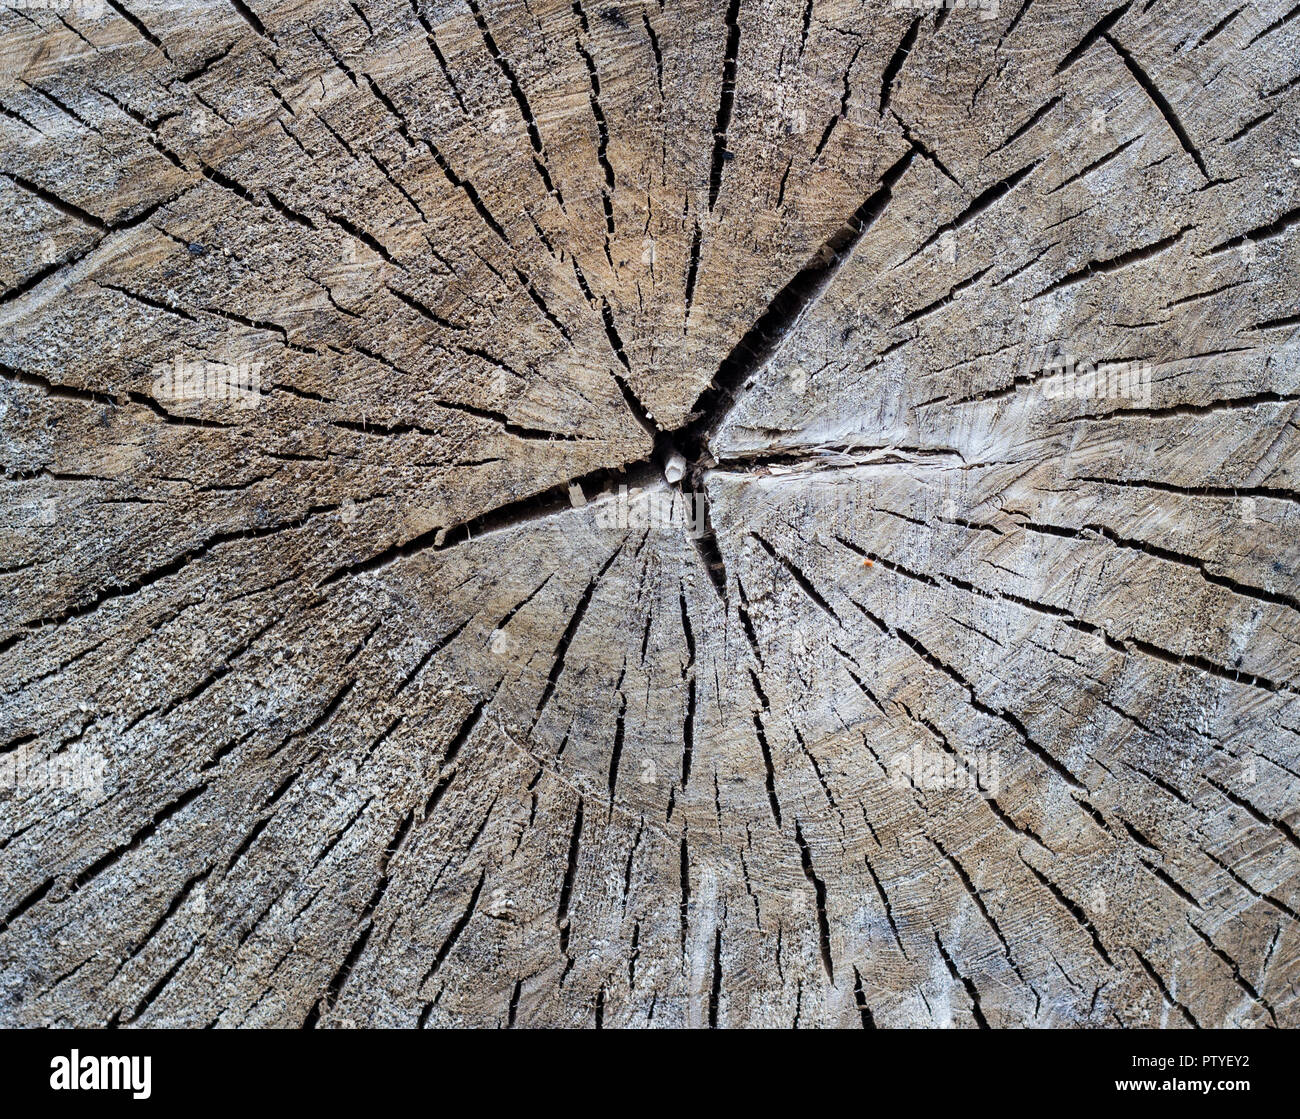 Texture of a tree with cracks, close-up Stock Photo